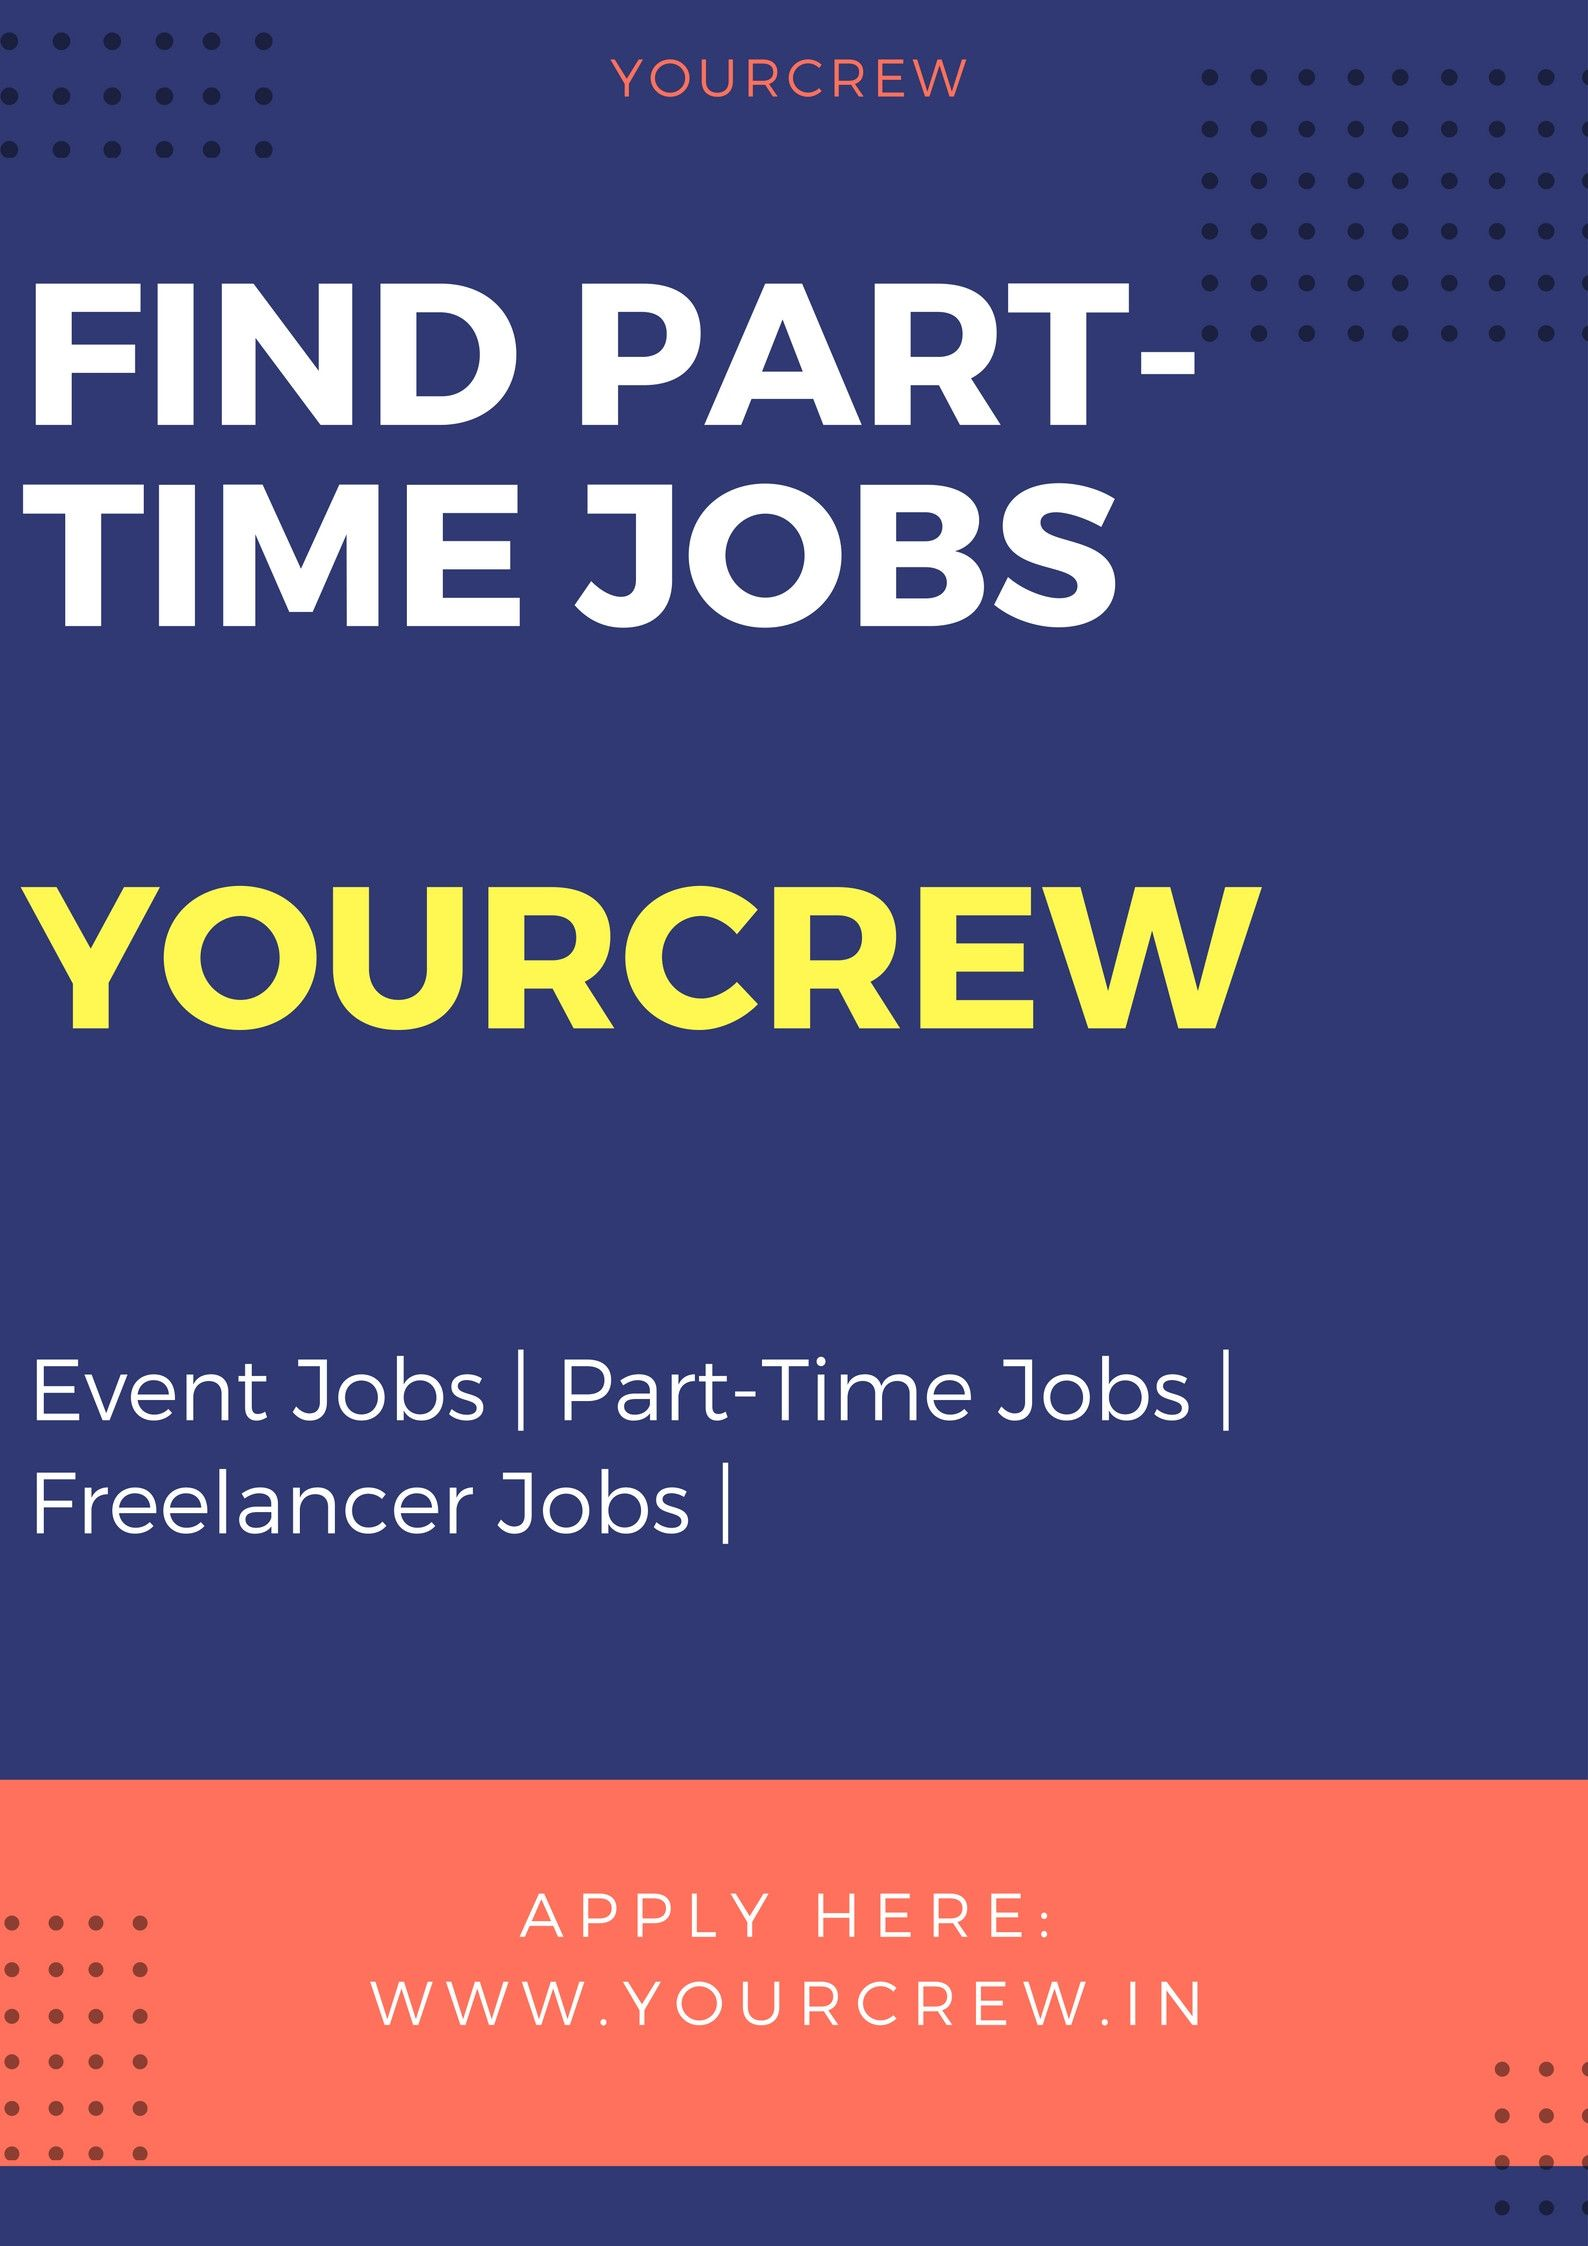 Registration Part time jobs, List of jobs, Event company